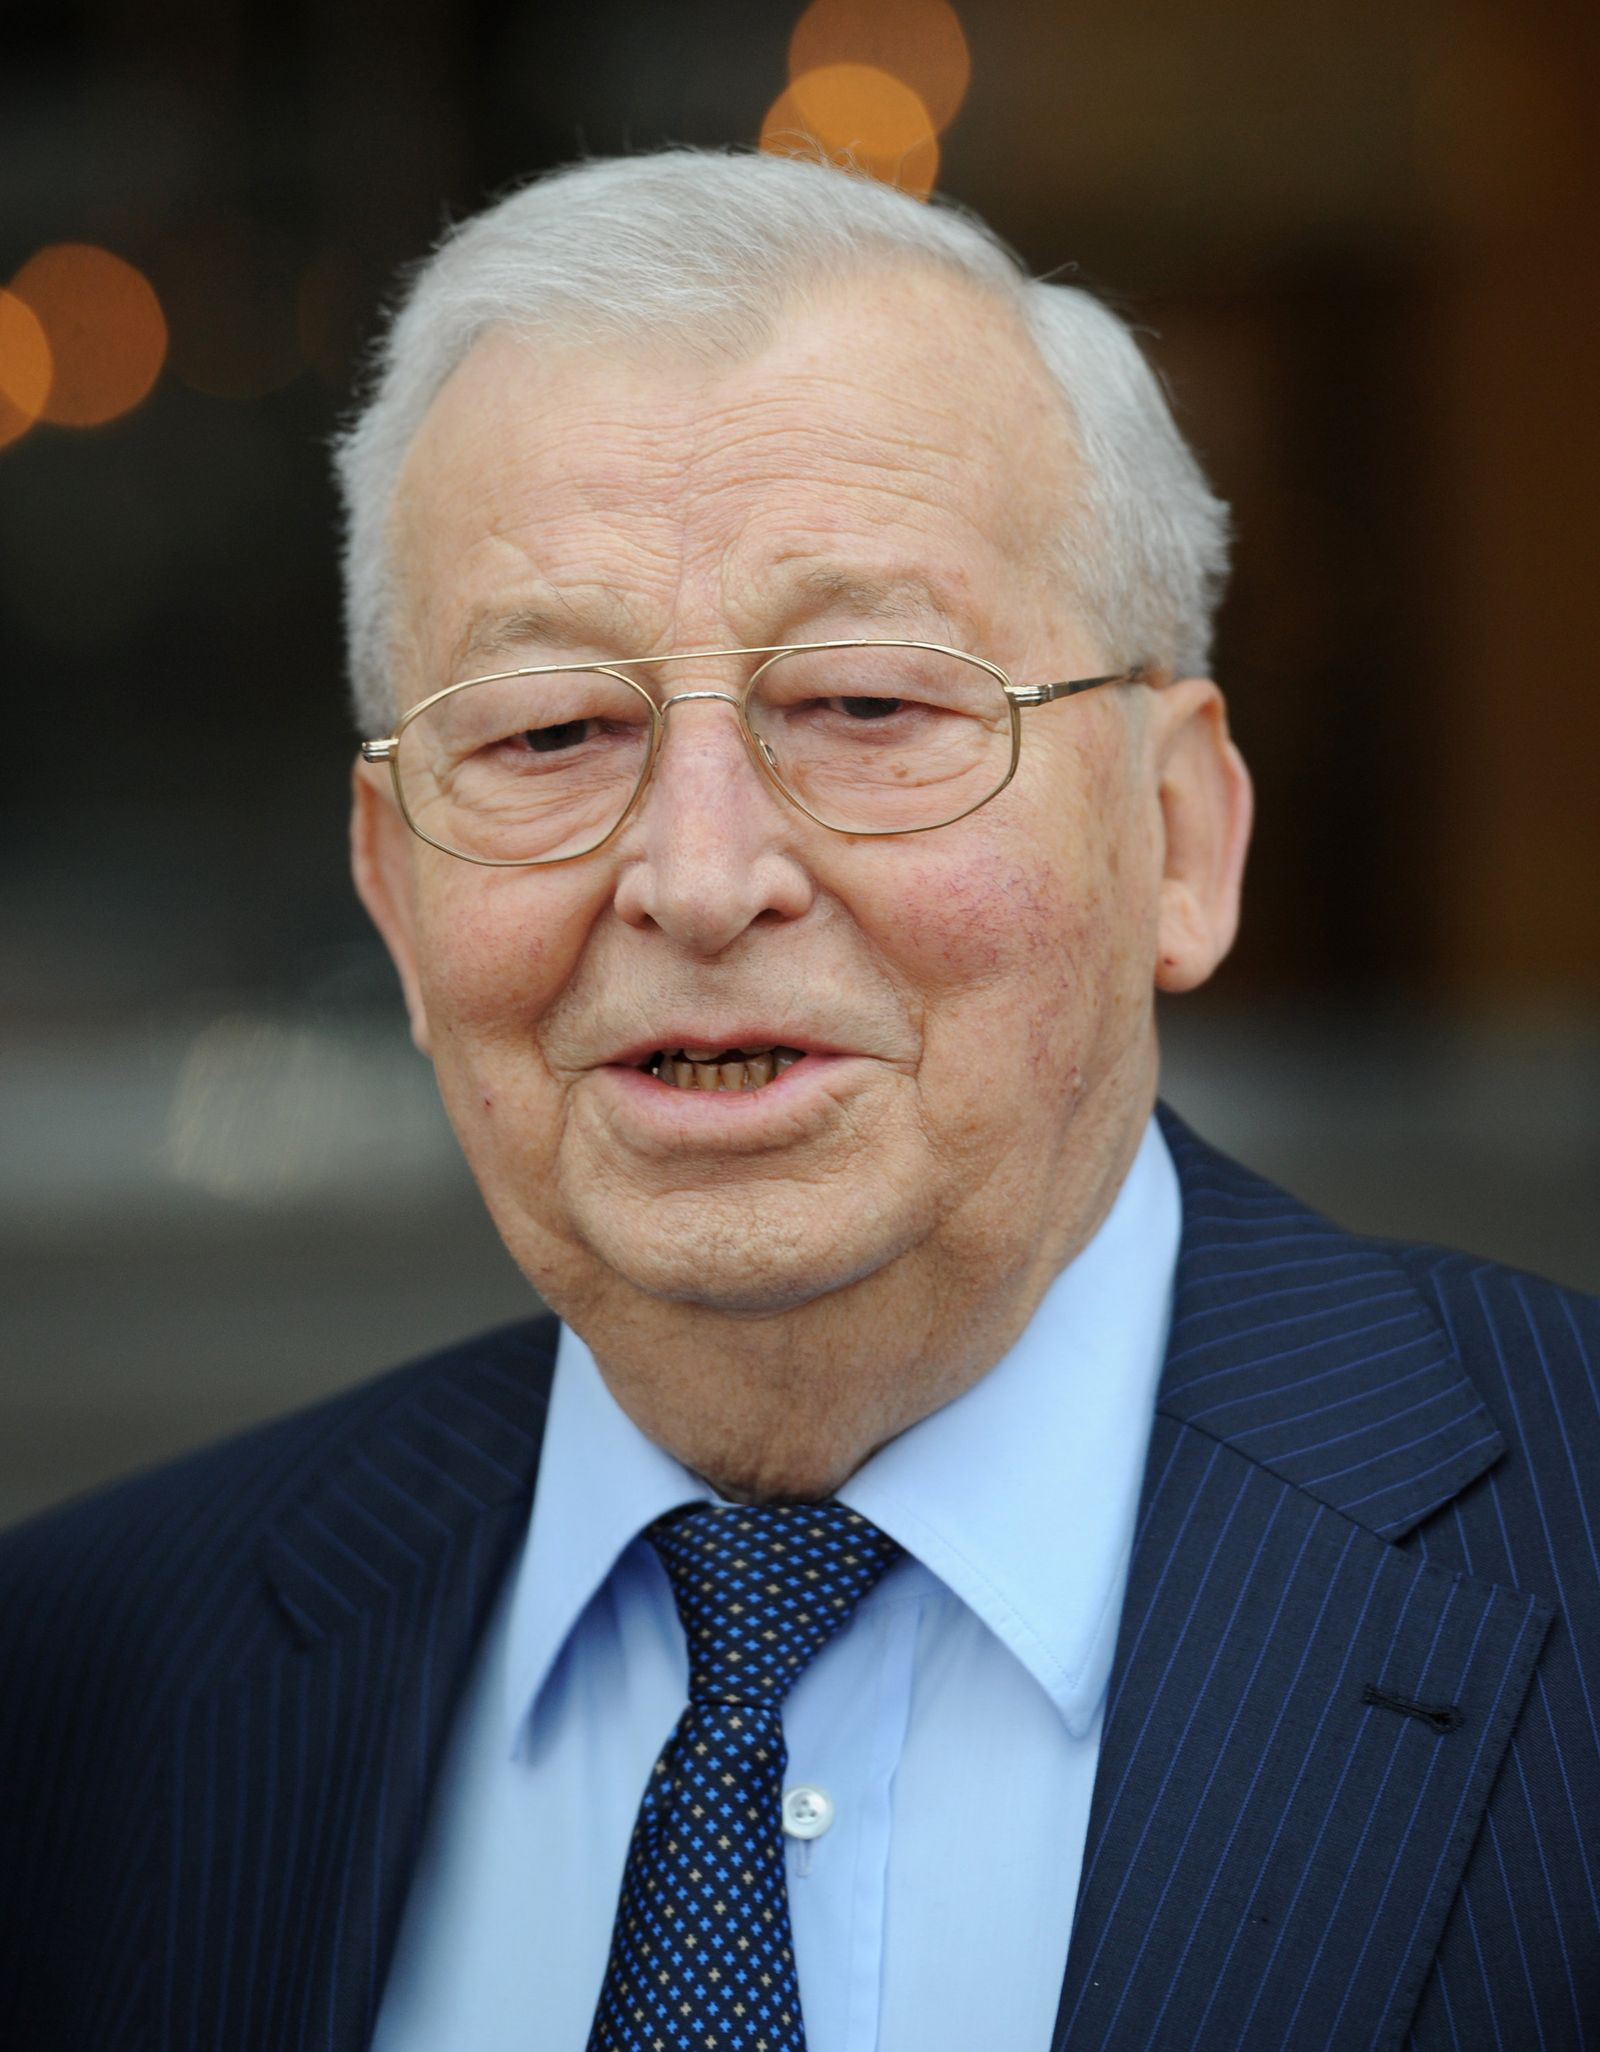 Reinfried Pohl